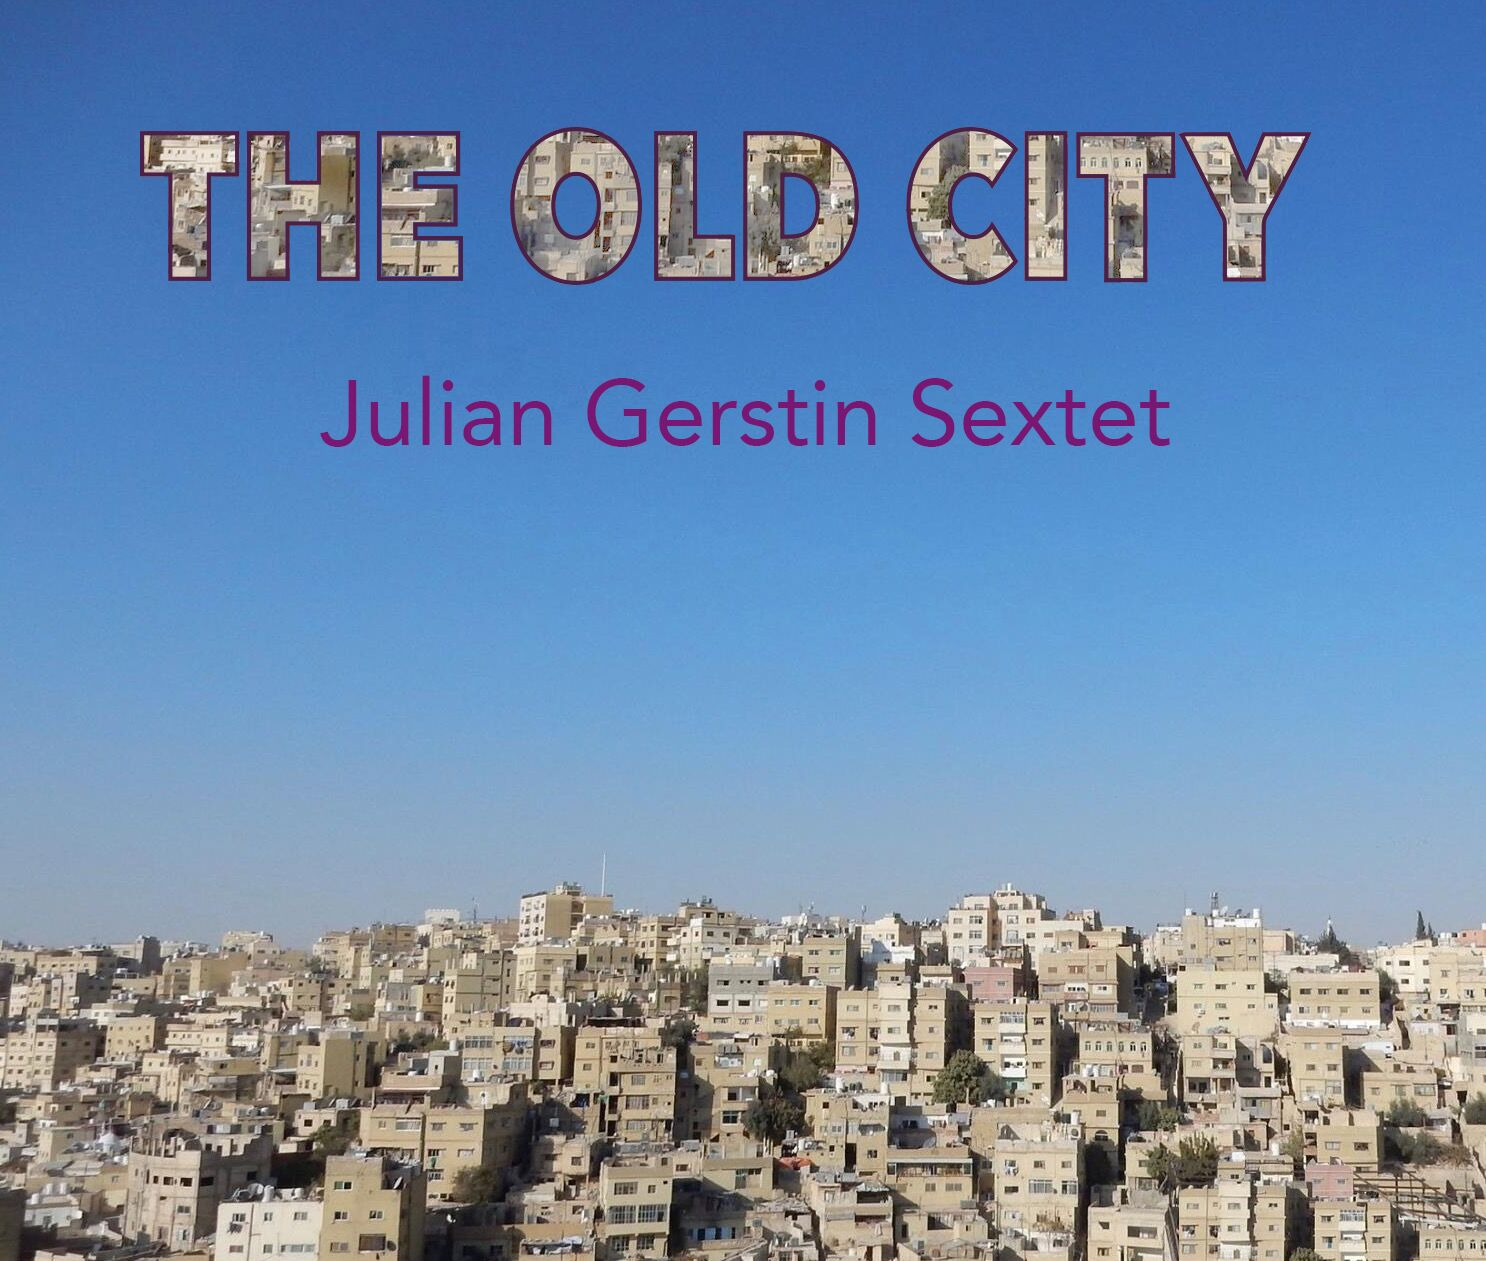 The Old City - This CD celebrates the world's crossroads cities, where immigrants and long-time residents mingle their musical traditions and new sounds emerge. Cumbia from Cali, danzón from Havana, mambo from New York, tsamikos from Athens, cocek from Skopje, salsa-merengue hybrids from the streets of San Francisco, are all expressed through the lens of contemporary jazz. In these times, we need to remember the importance of people of different cultures sharing their lives. Speaking of sharing, I continue to feel wonder at how collaborative music is. As we prepared this recording, each band member made critical contributions. It takes the combined efforts, the lifetime of experience, the imagination and the specific musical skills of an entire group to make a song come alive. I thank each of them whole-heartedly.